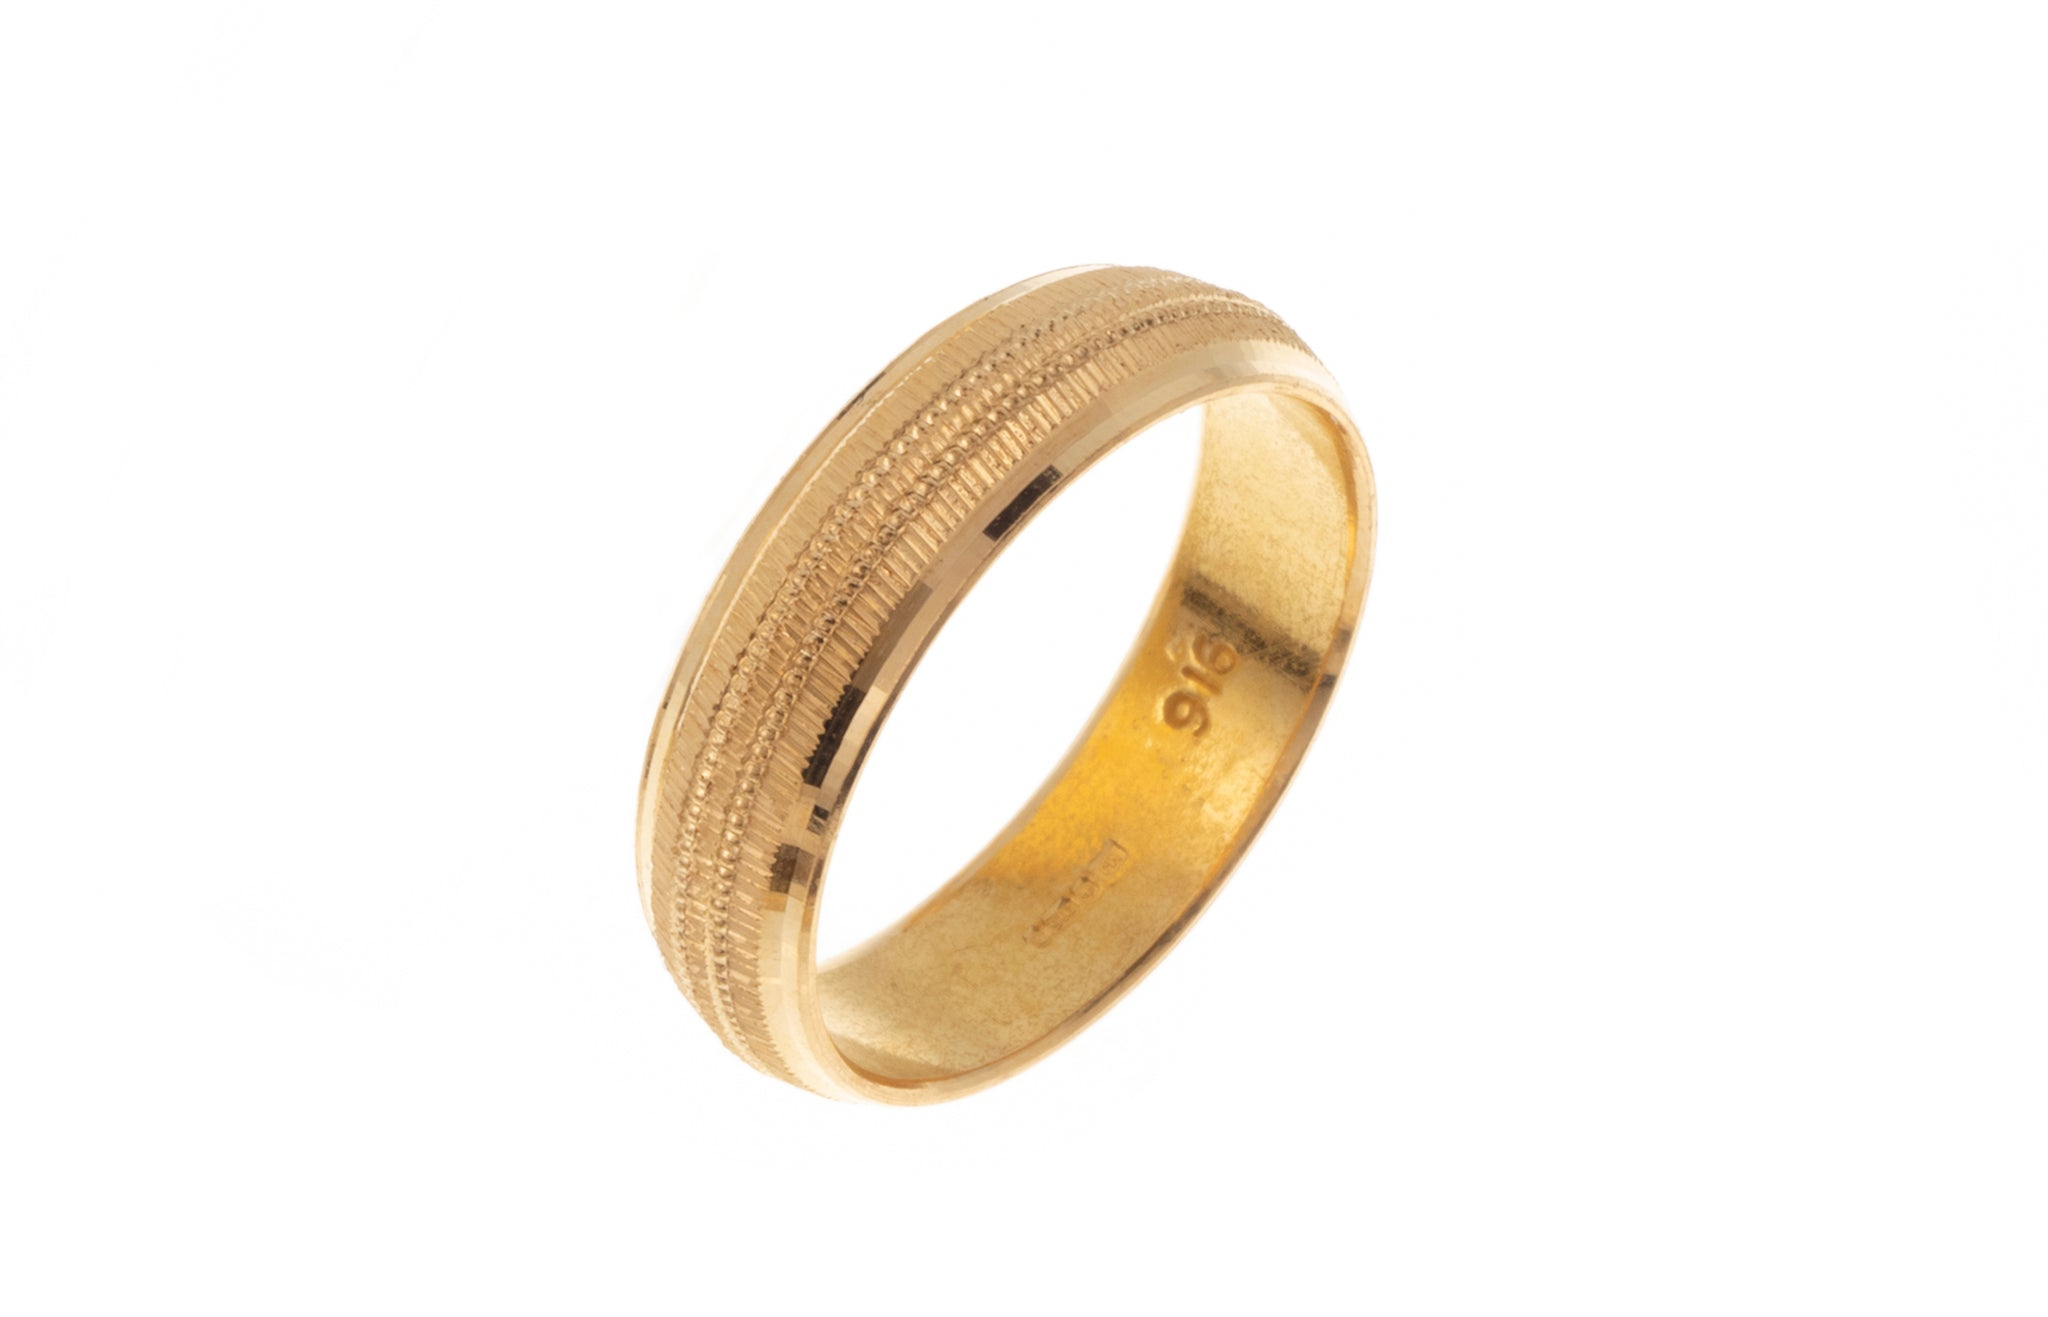 22ct Gold Wedding Band with Diamond Cut Design LR/GR-7363